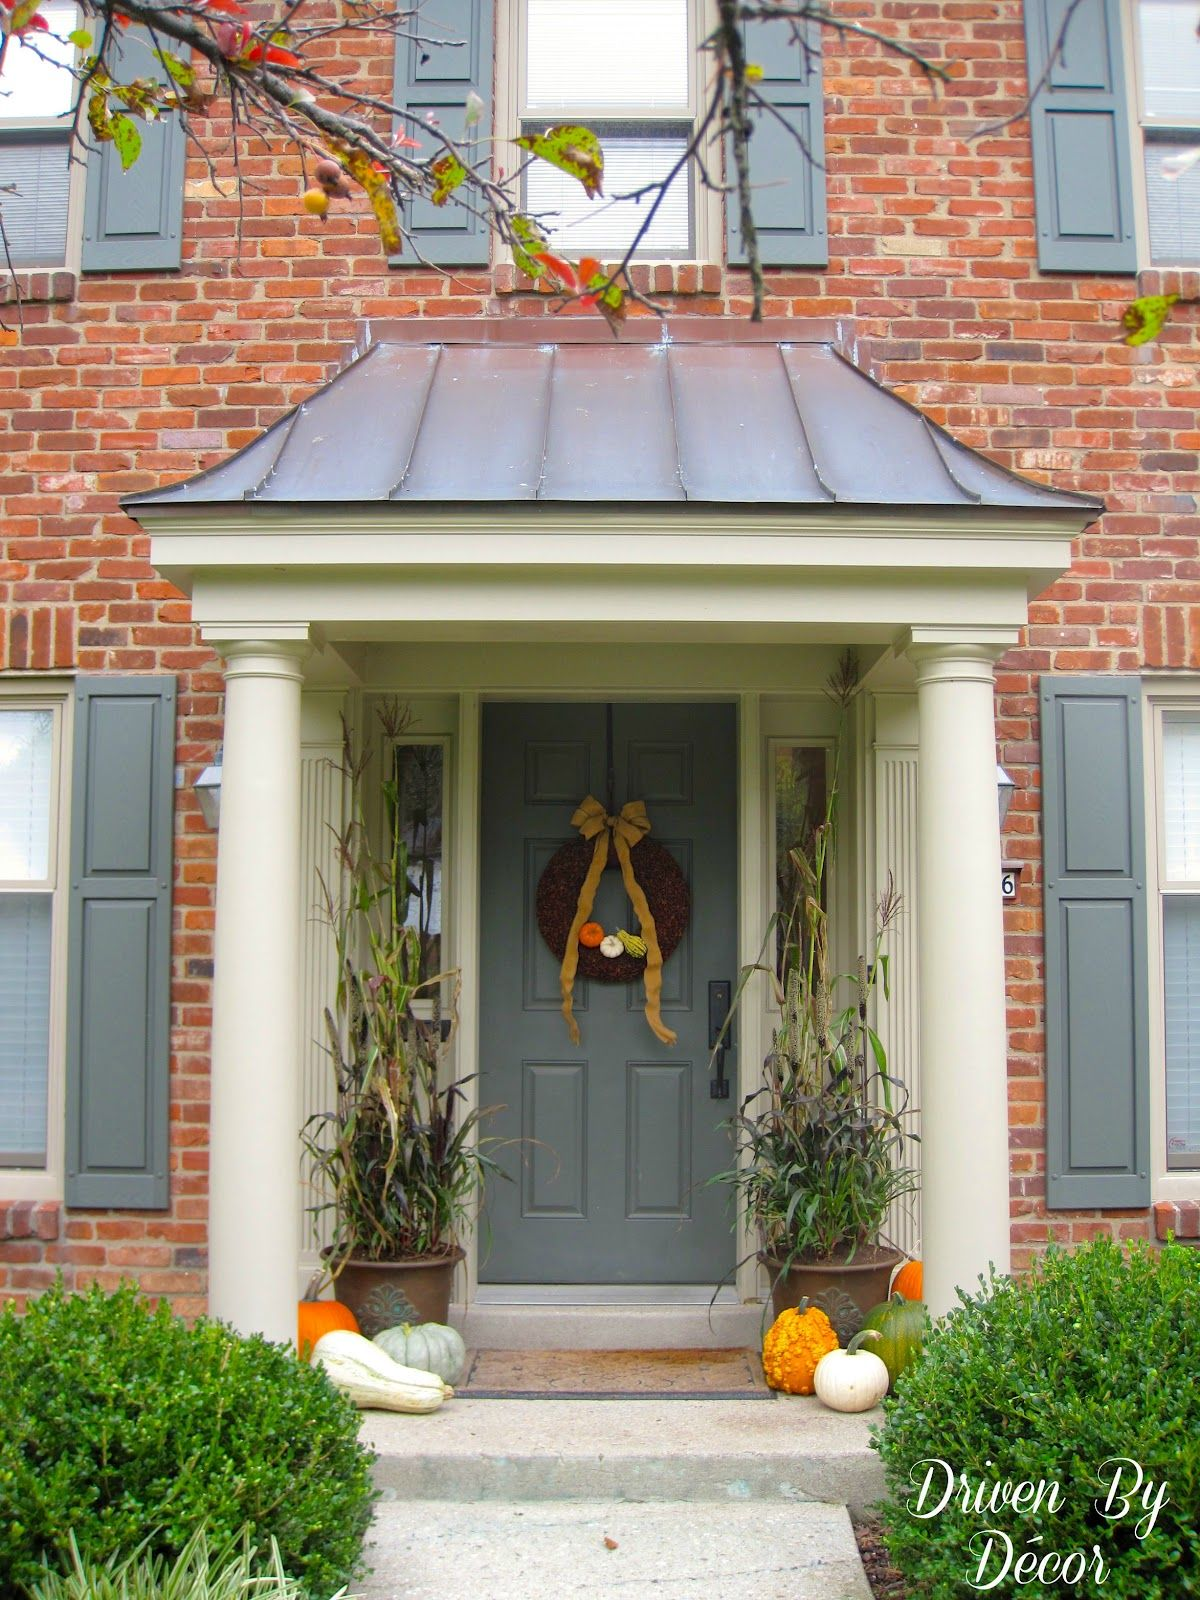 drivendécor: decorating my front porch for fall - i love the